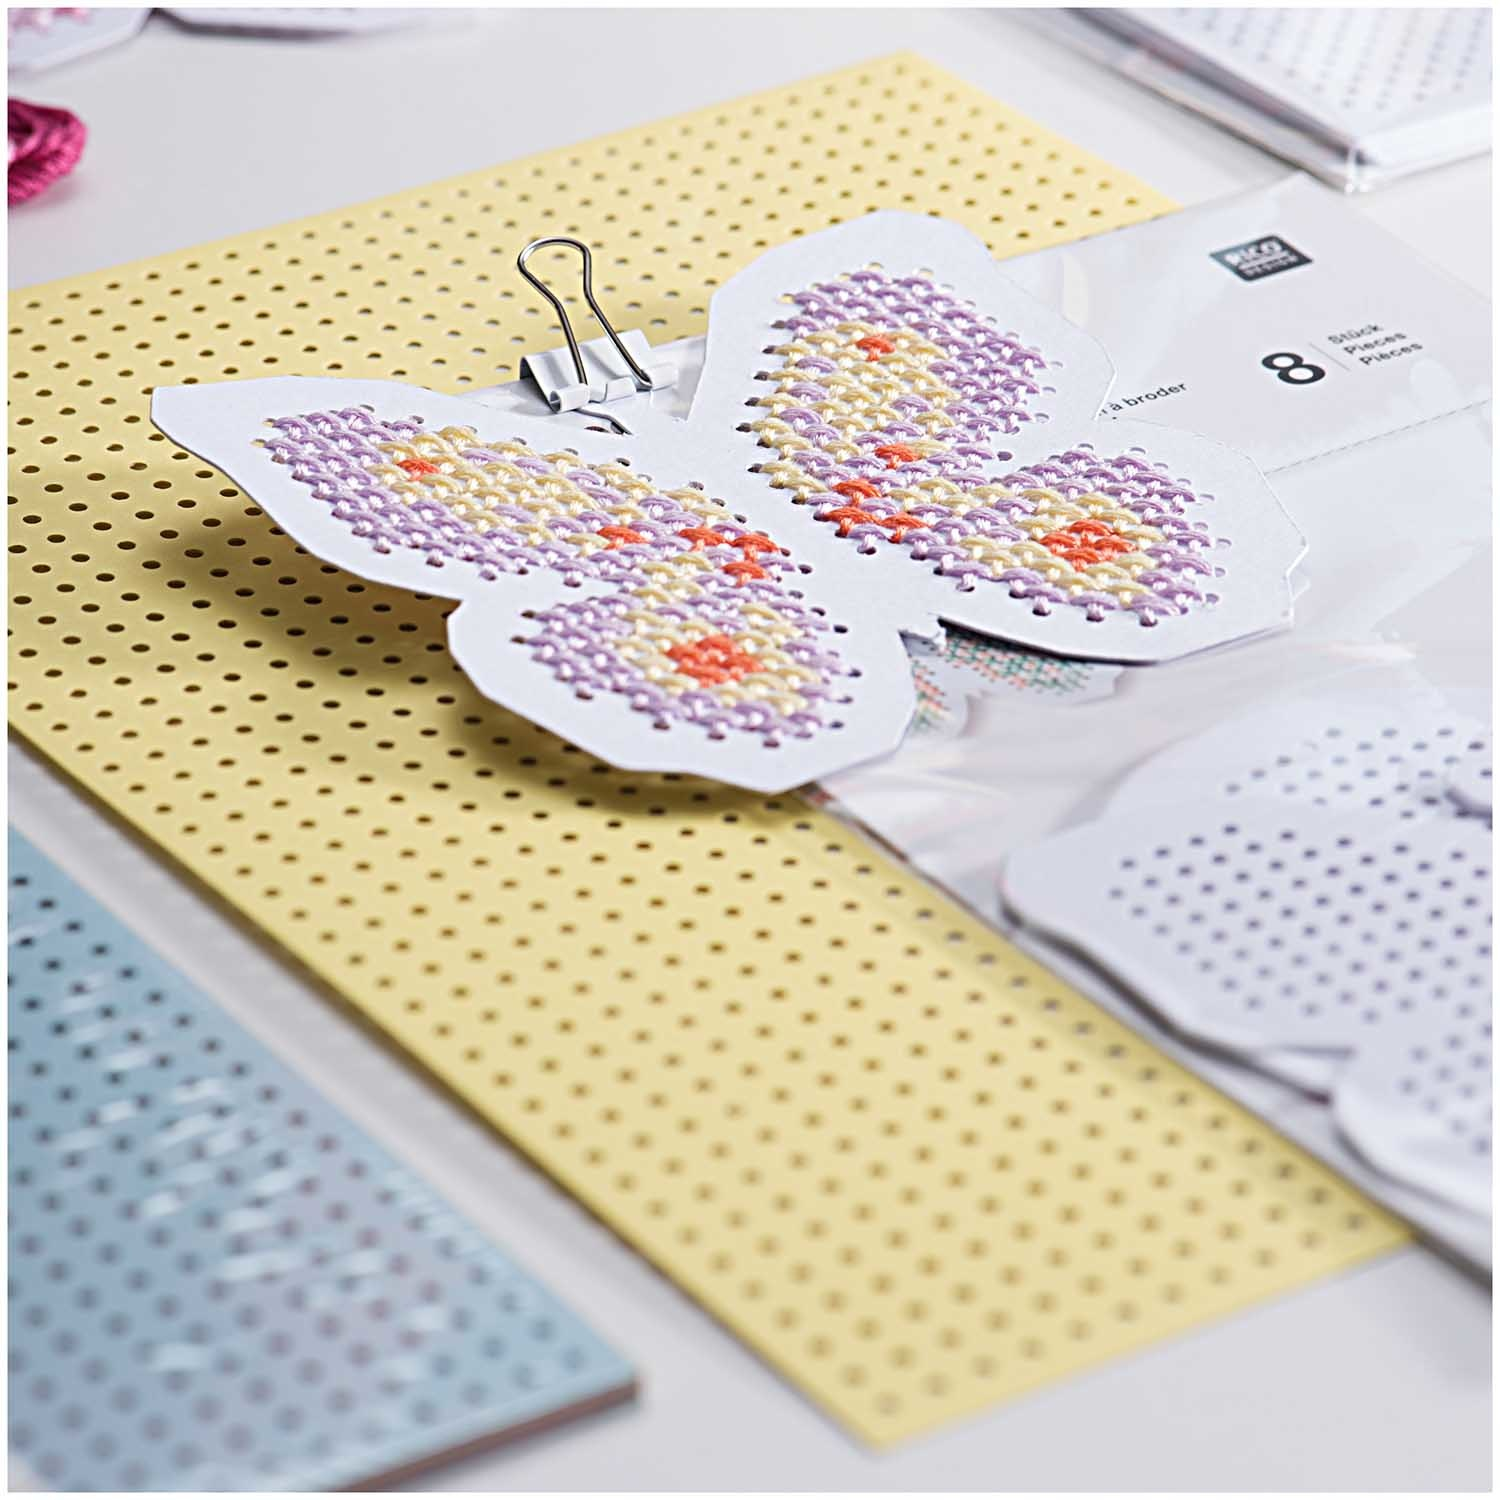 Rico NAY EMBROIDERY BOARD, SPRING 8 PCS